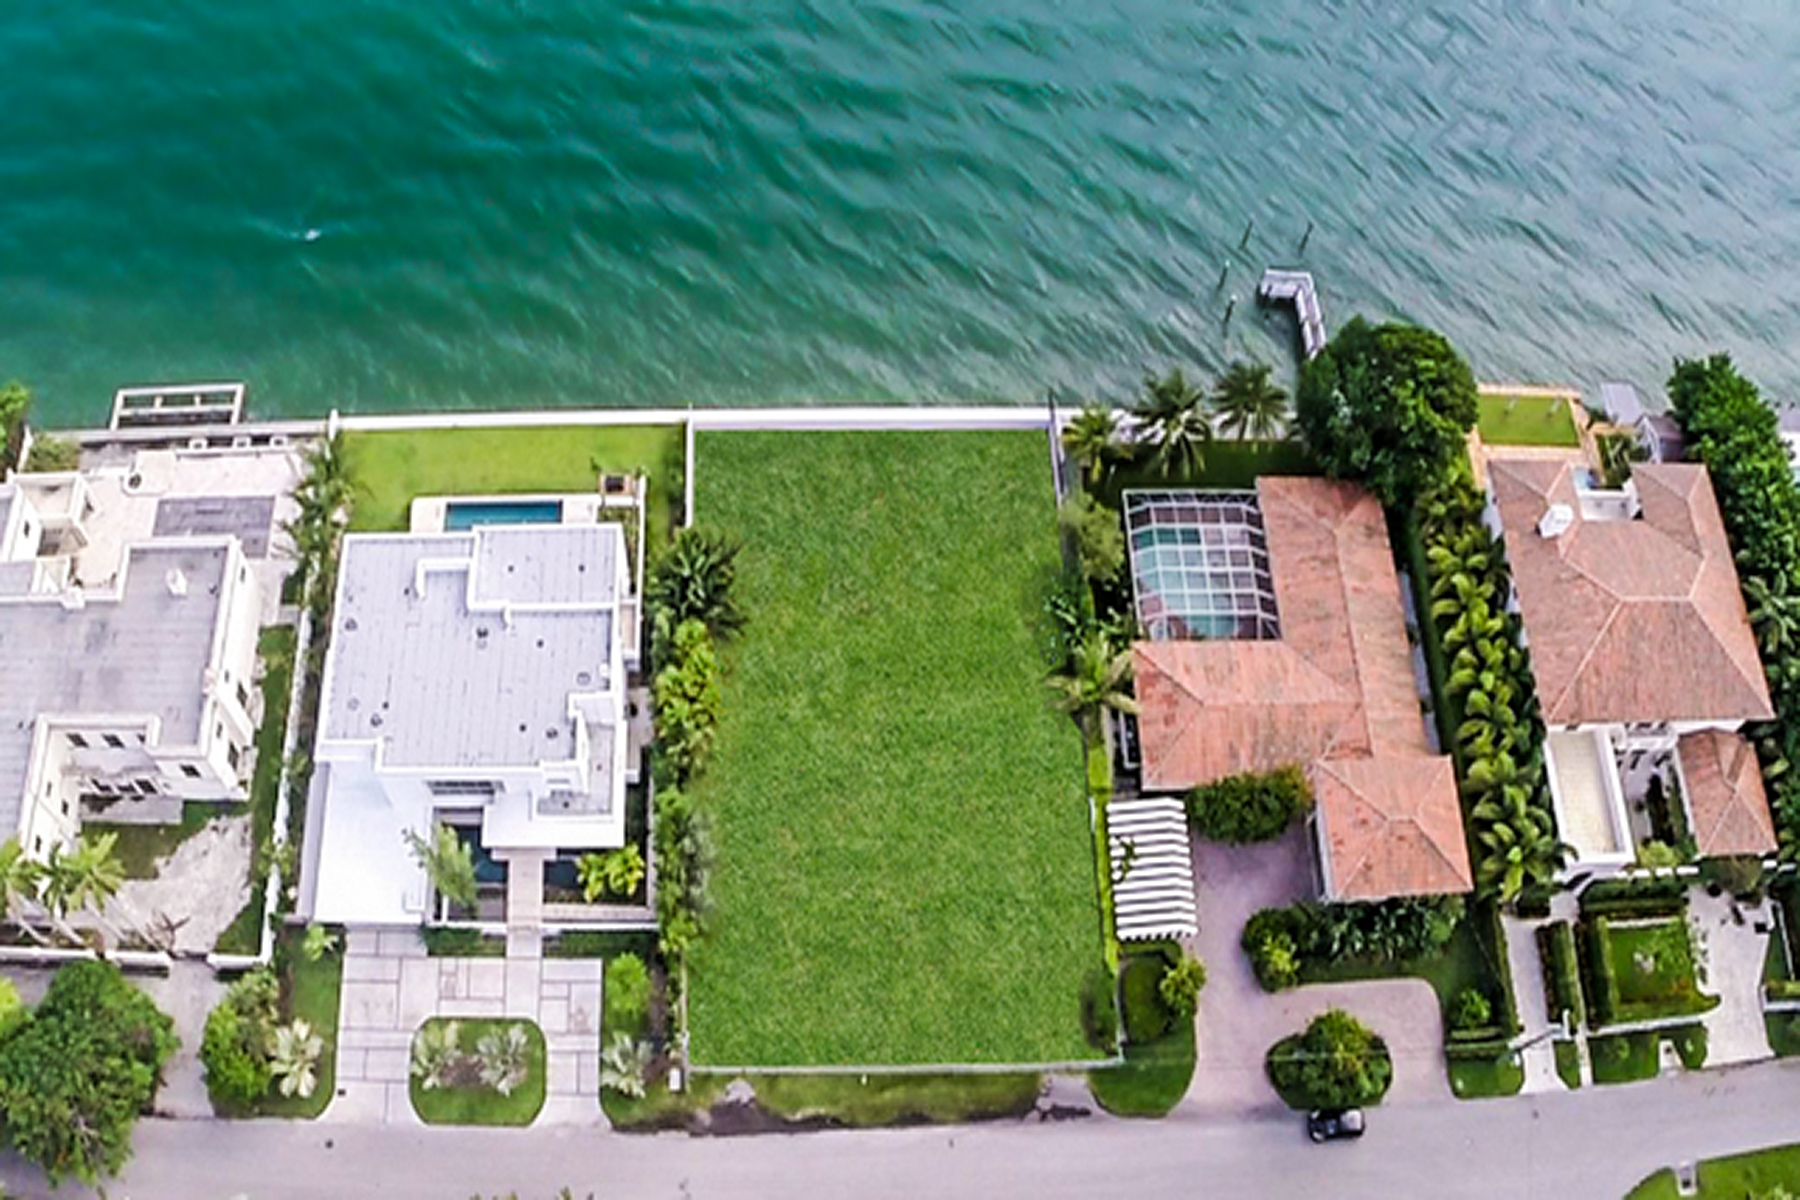 for Sale at 630 South Mashta Dr Key Biscayne, Florida, 33149 United States